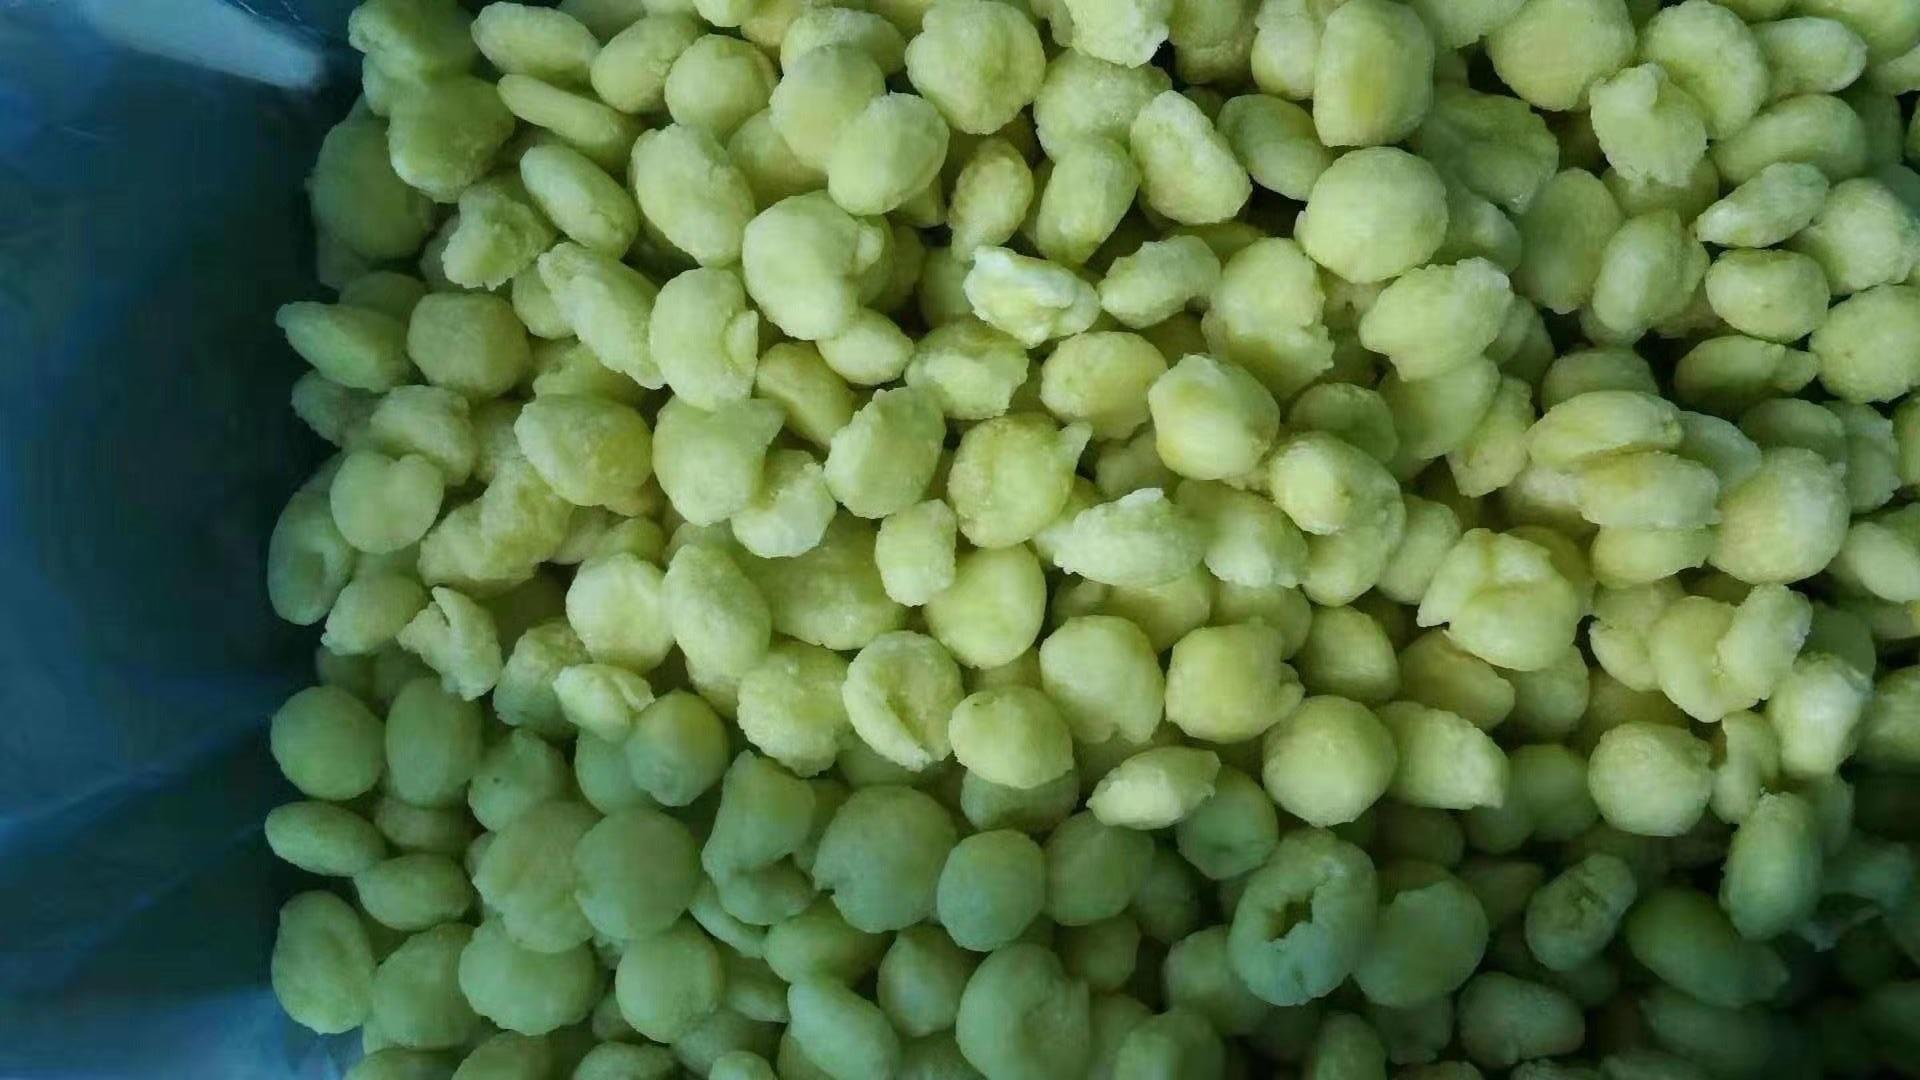 IQF Grapes Wholes,Frozen Grapes Pulp,peeled,seedless 19